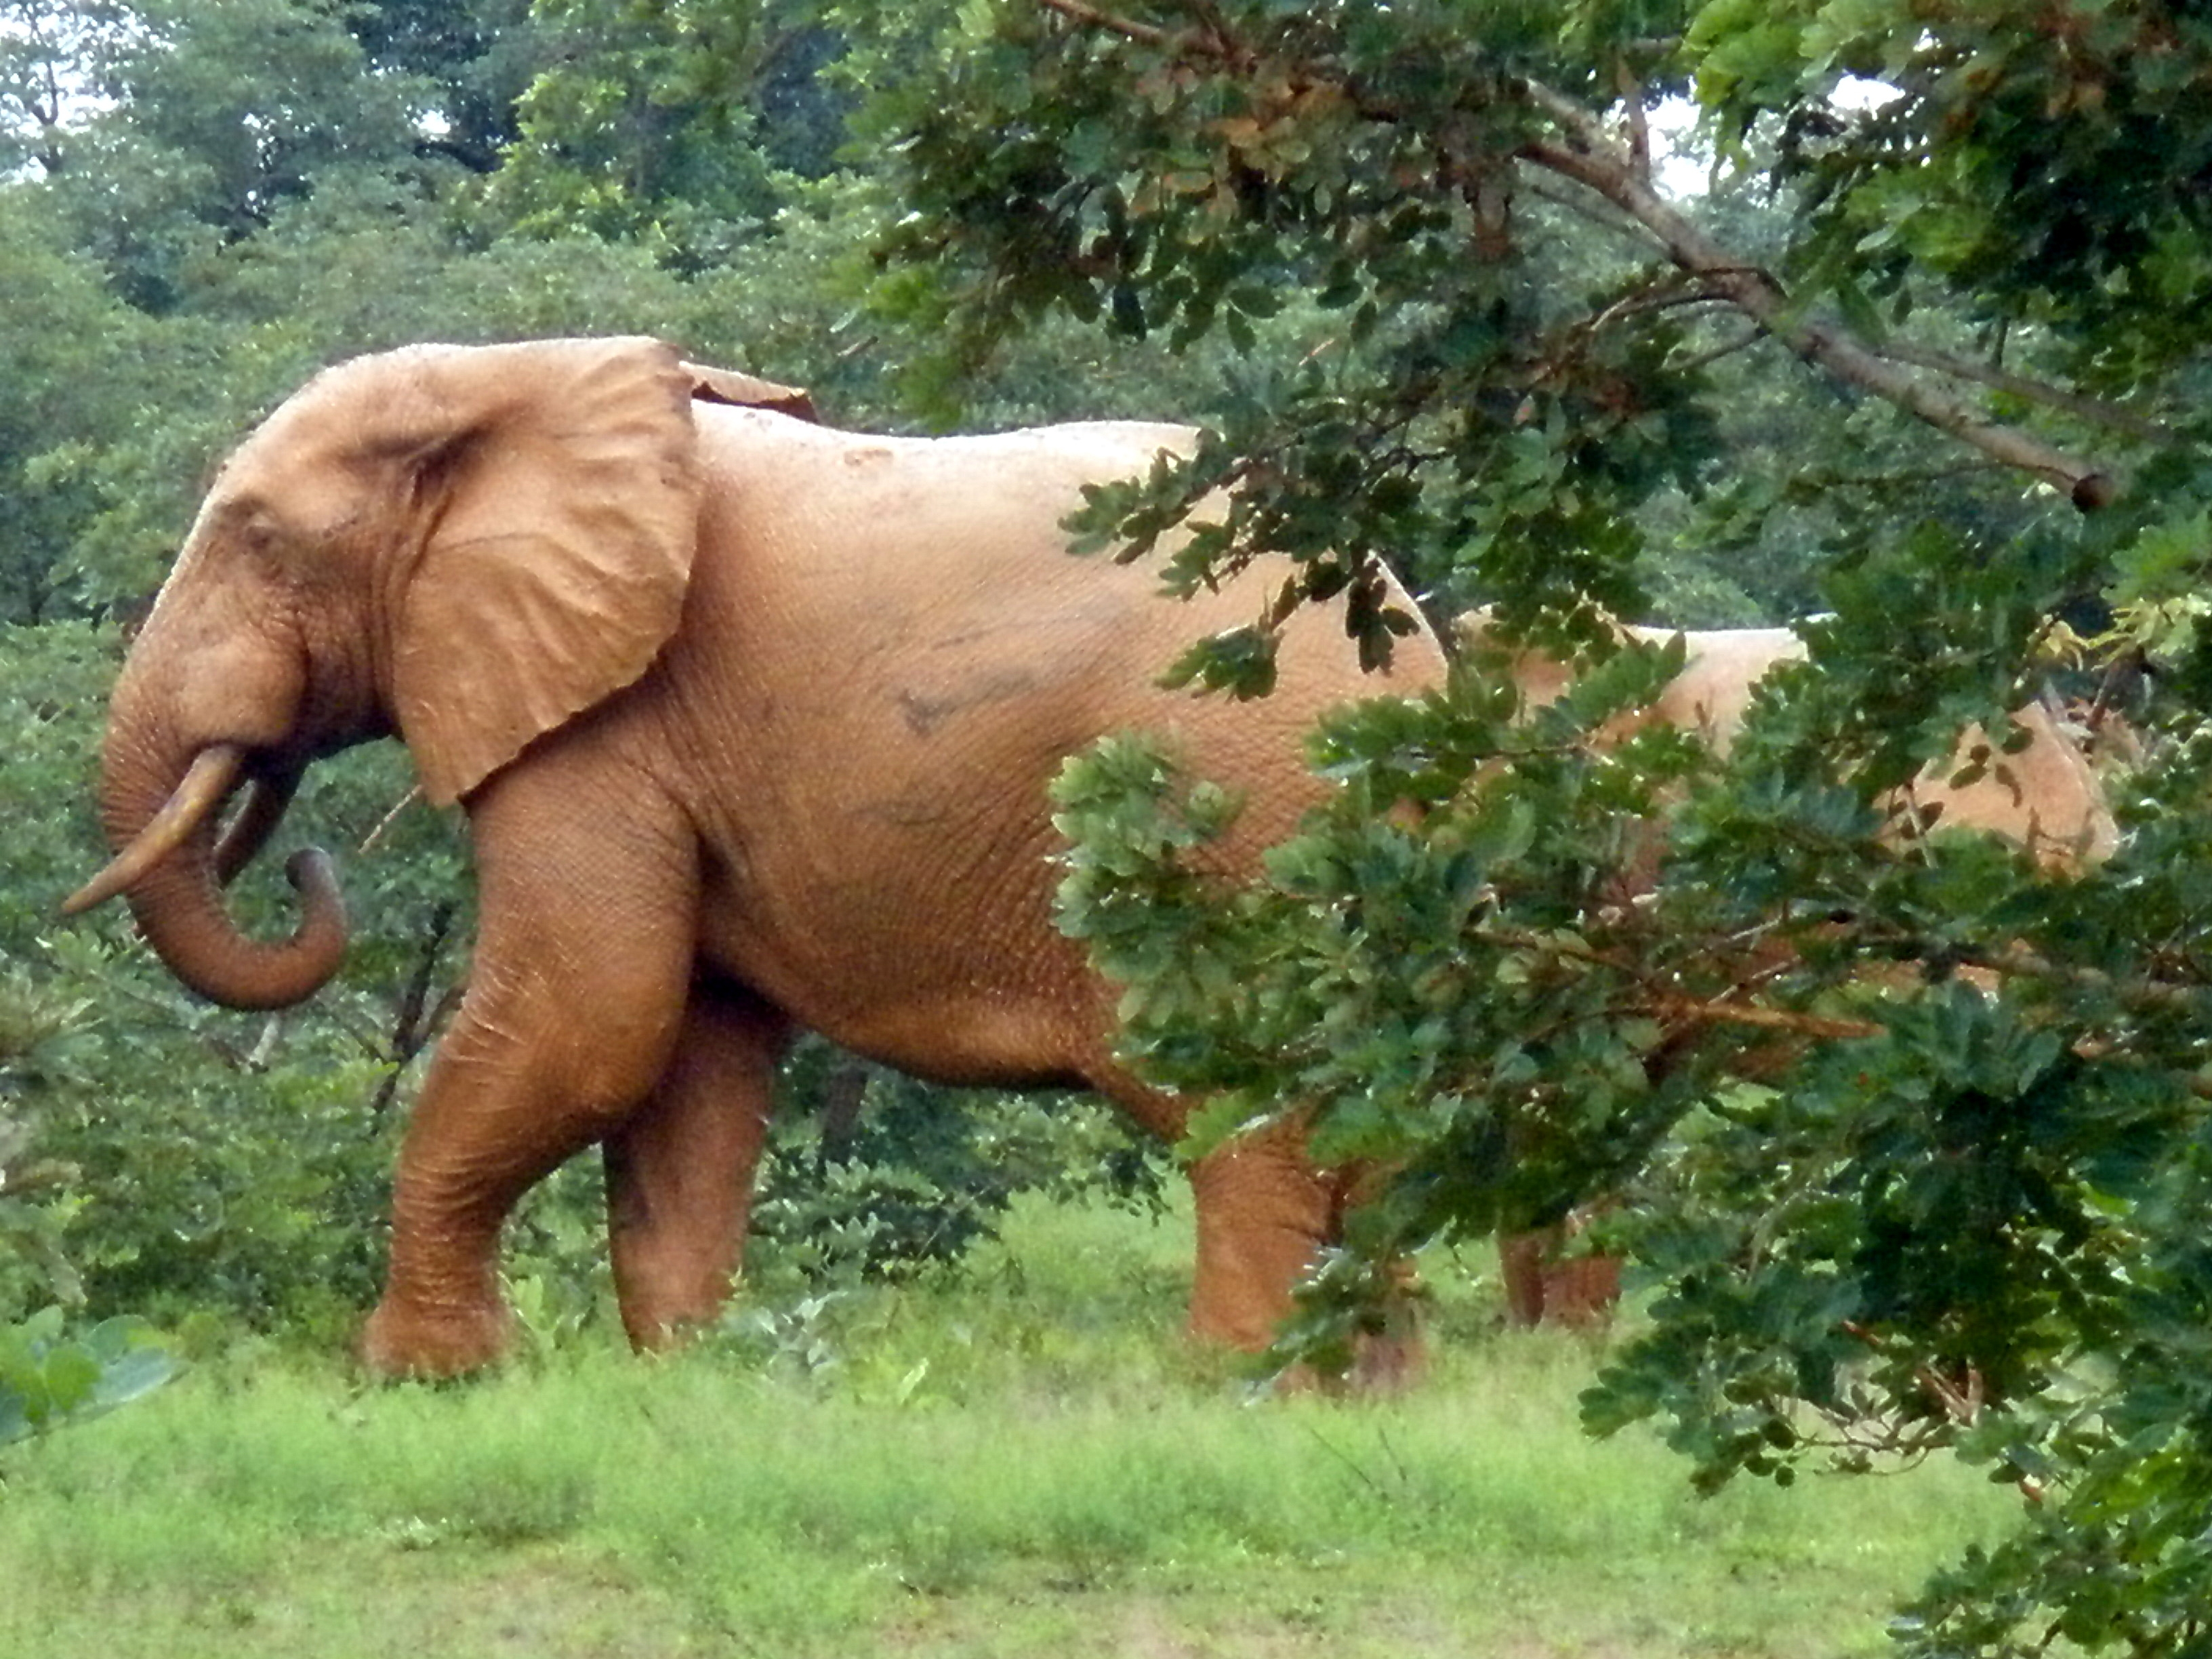 Come up close to the elephants at Mole National Park